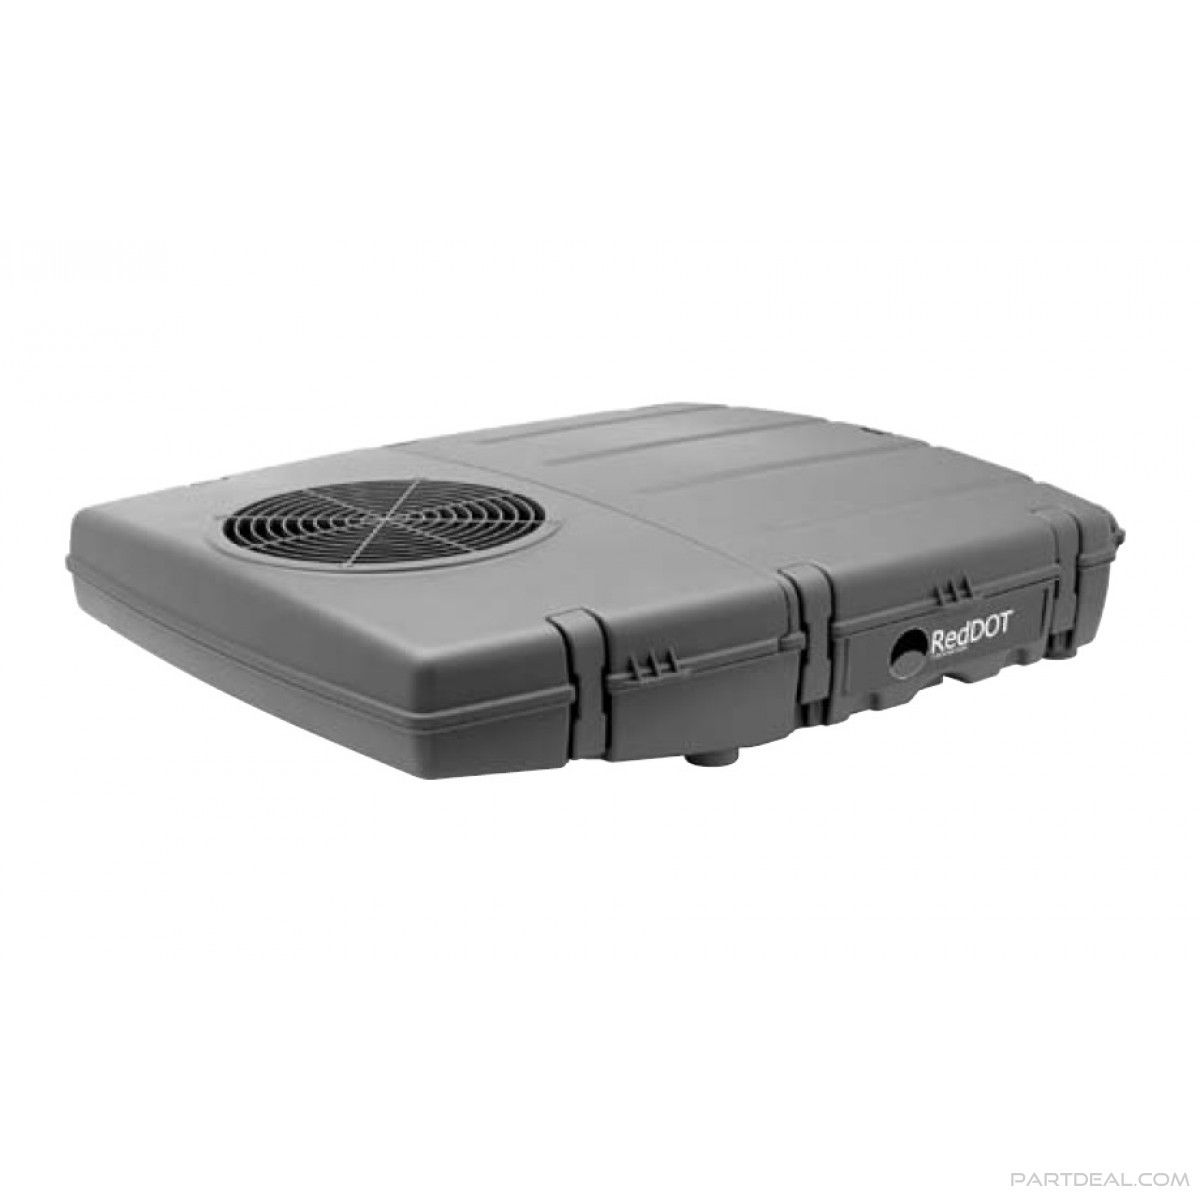 Red Dot Rooftop Heater A C R 9777 0p Air Conditioner Heater Vw T5 Interior Sprinter Van